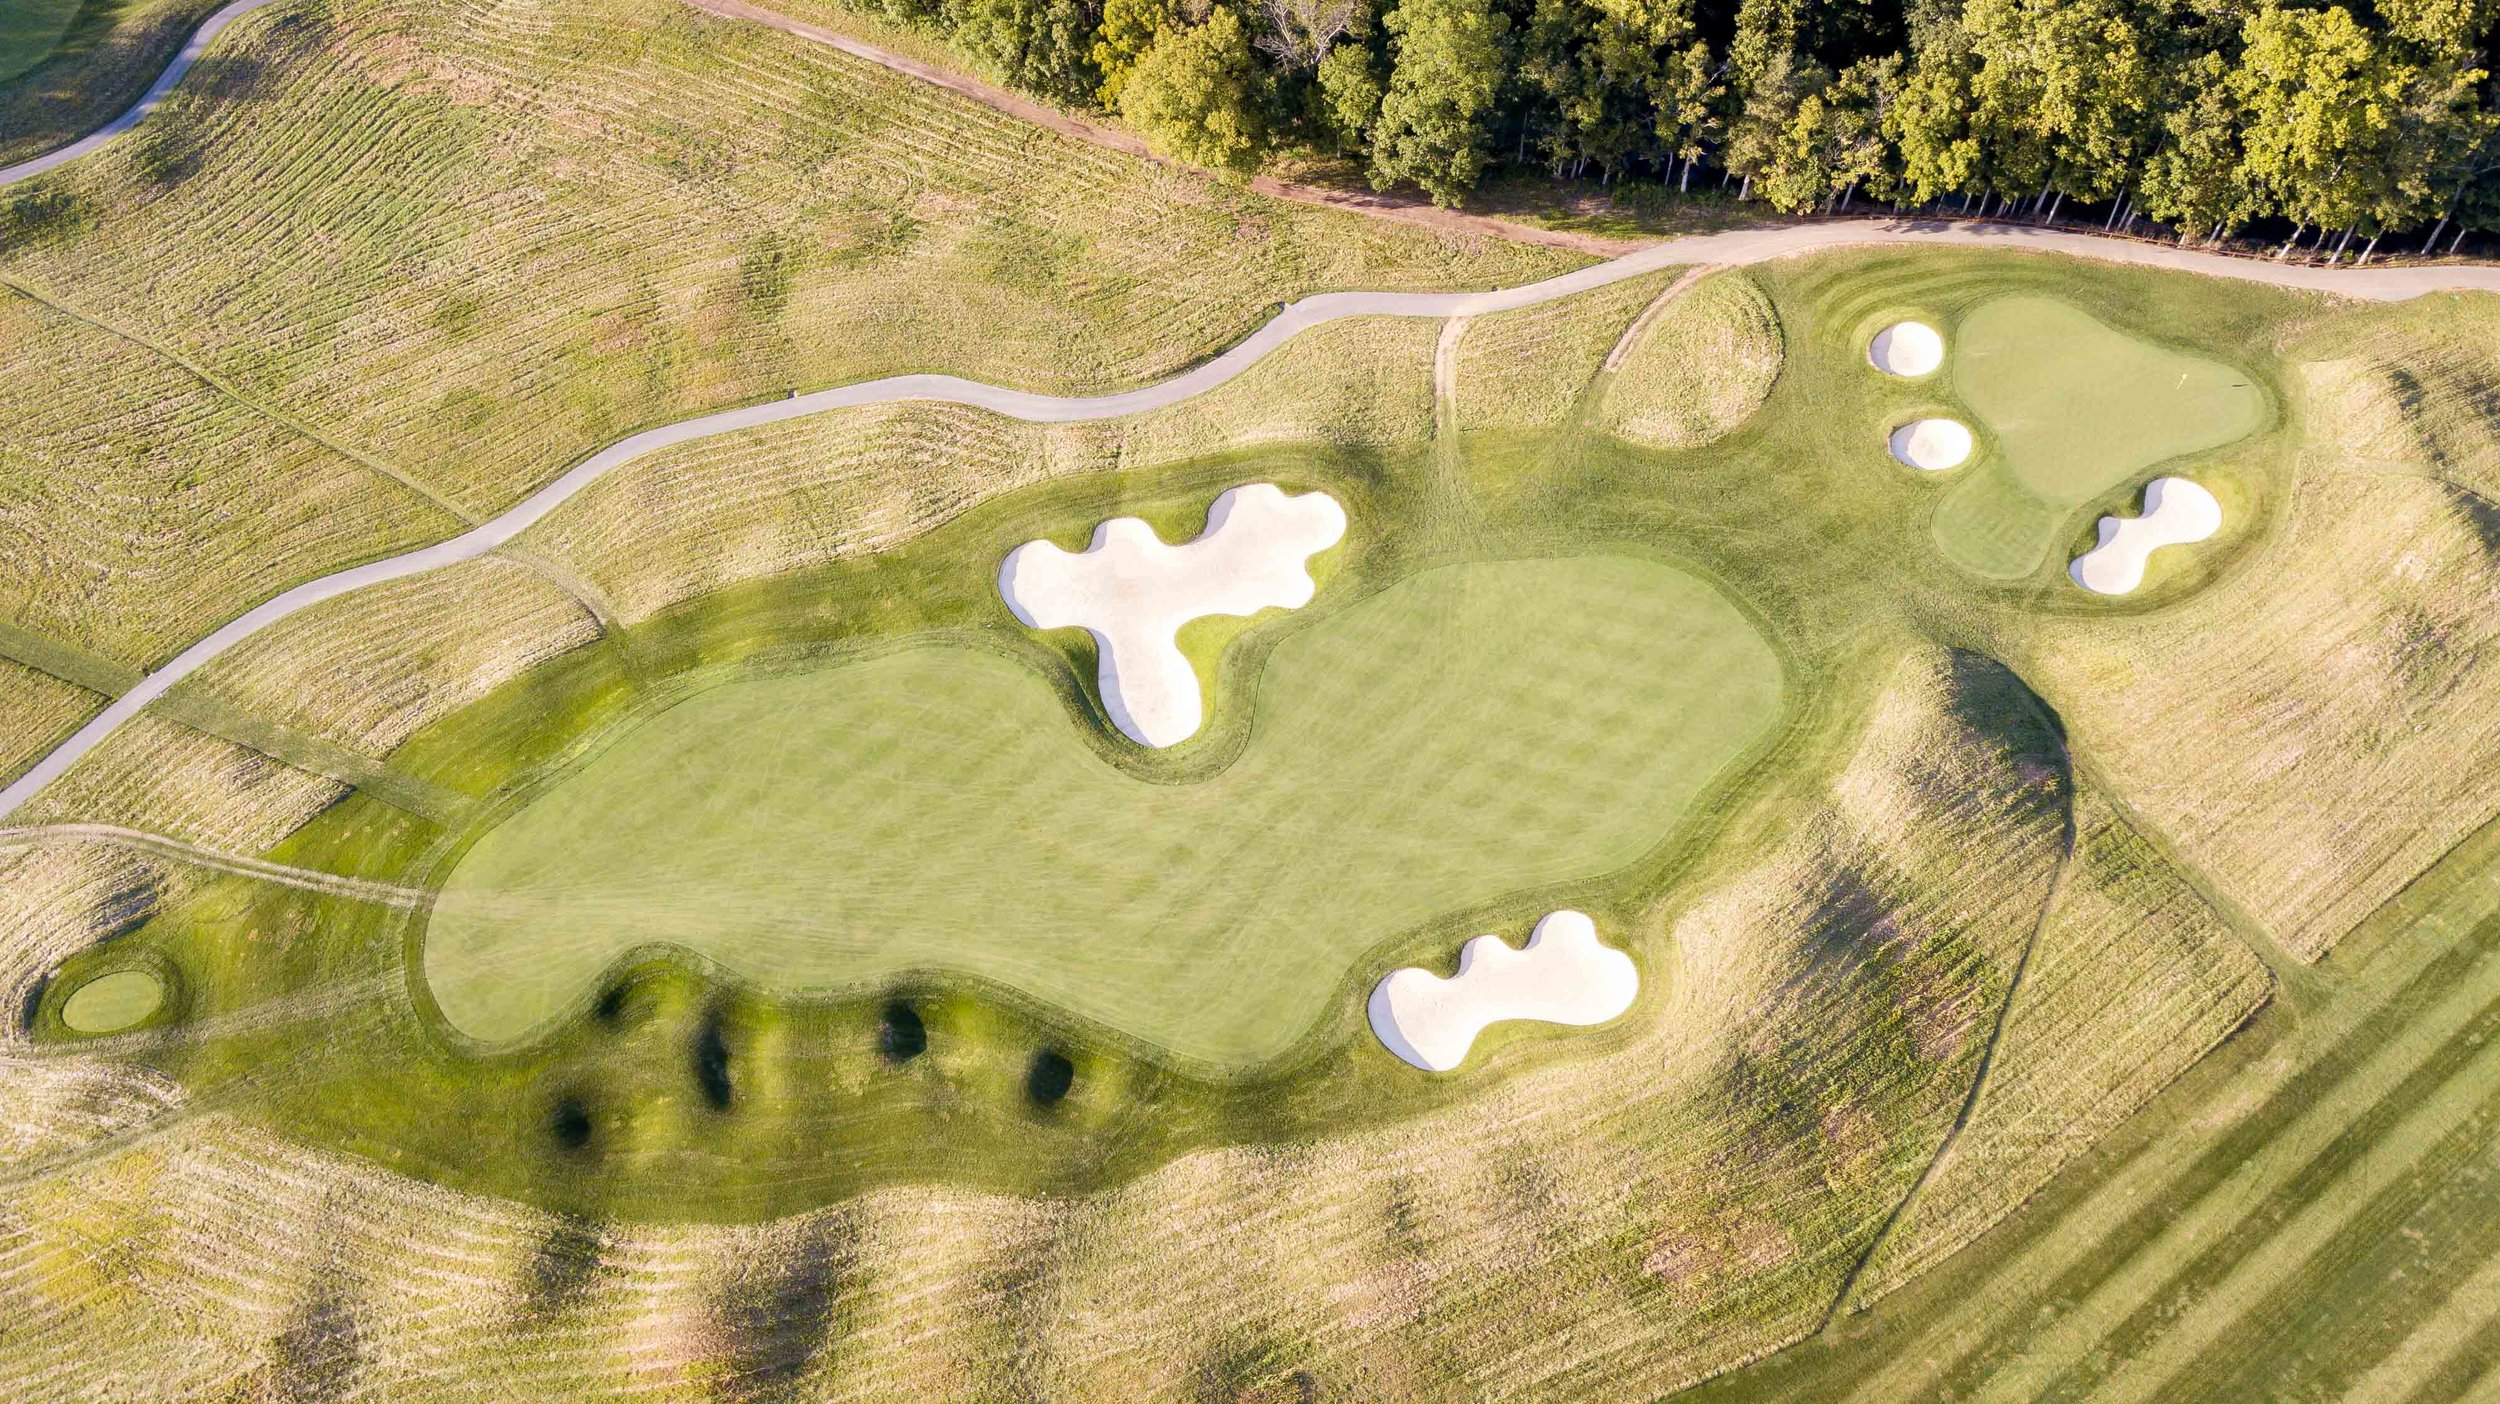 The potentially drive-able 4th hole at Valhalla